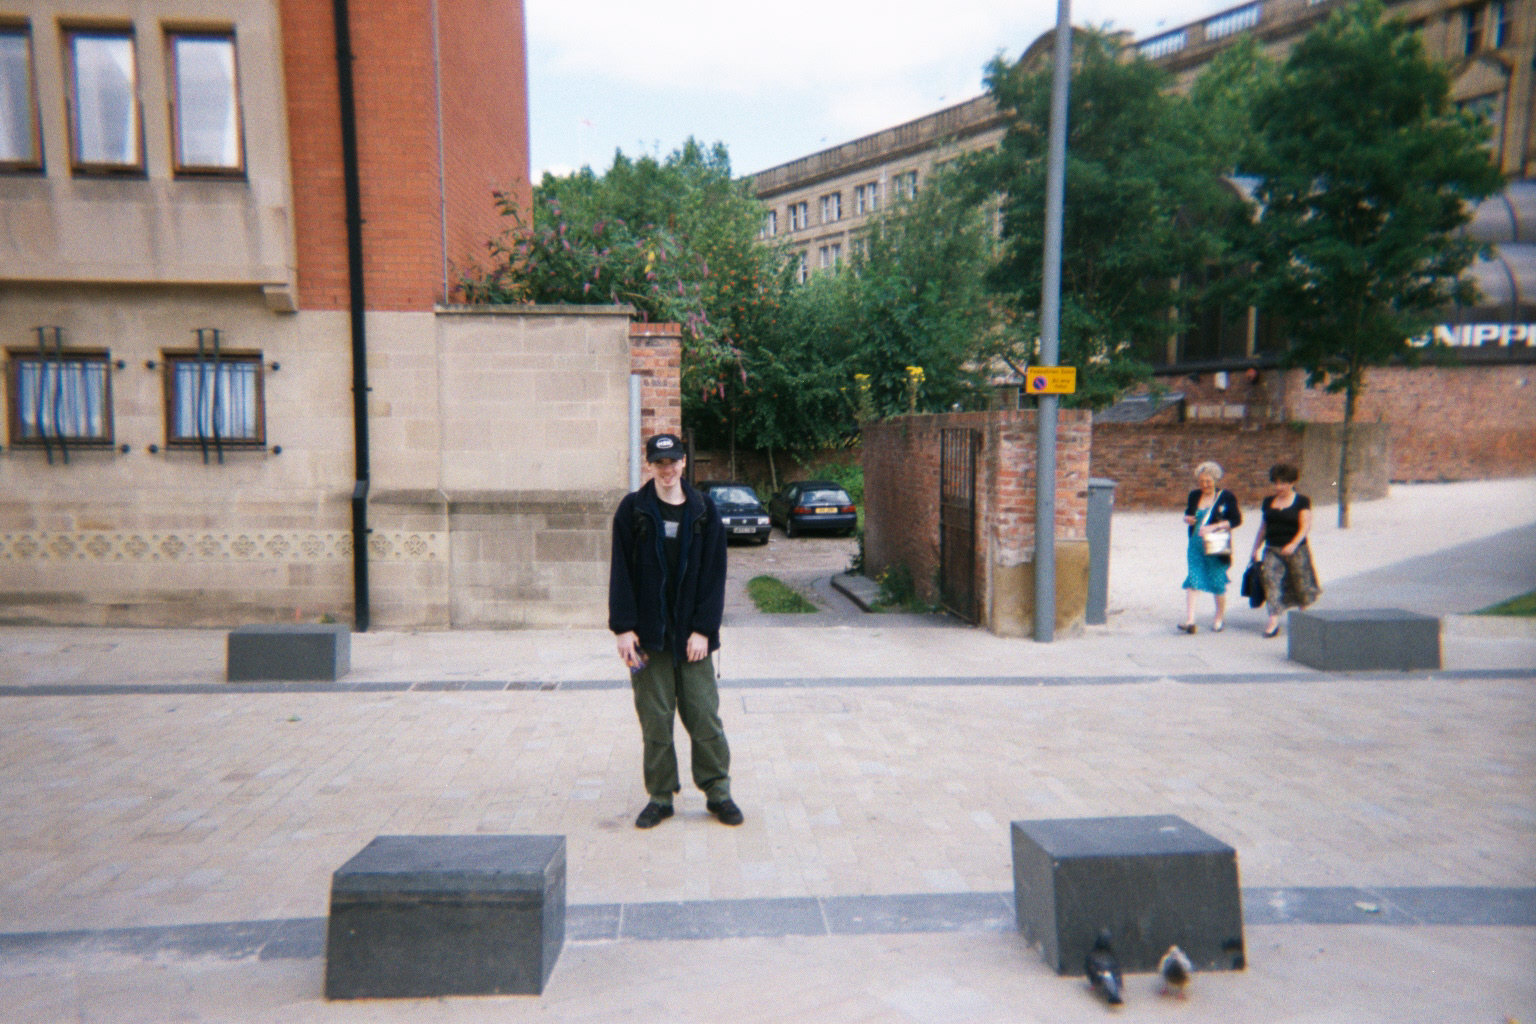 Me, Chris Elison in Cathedral Gardens, Manchester